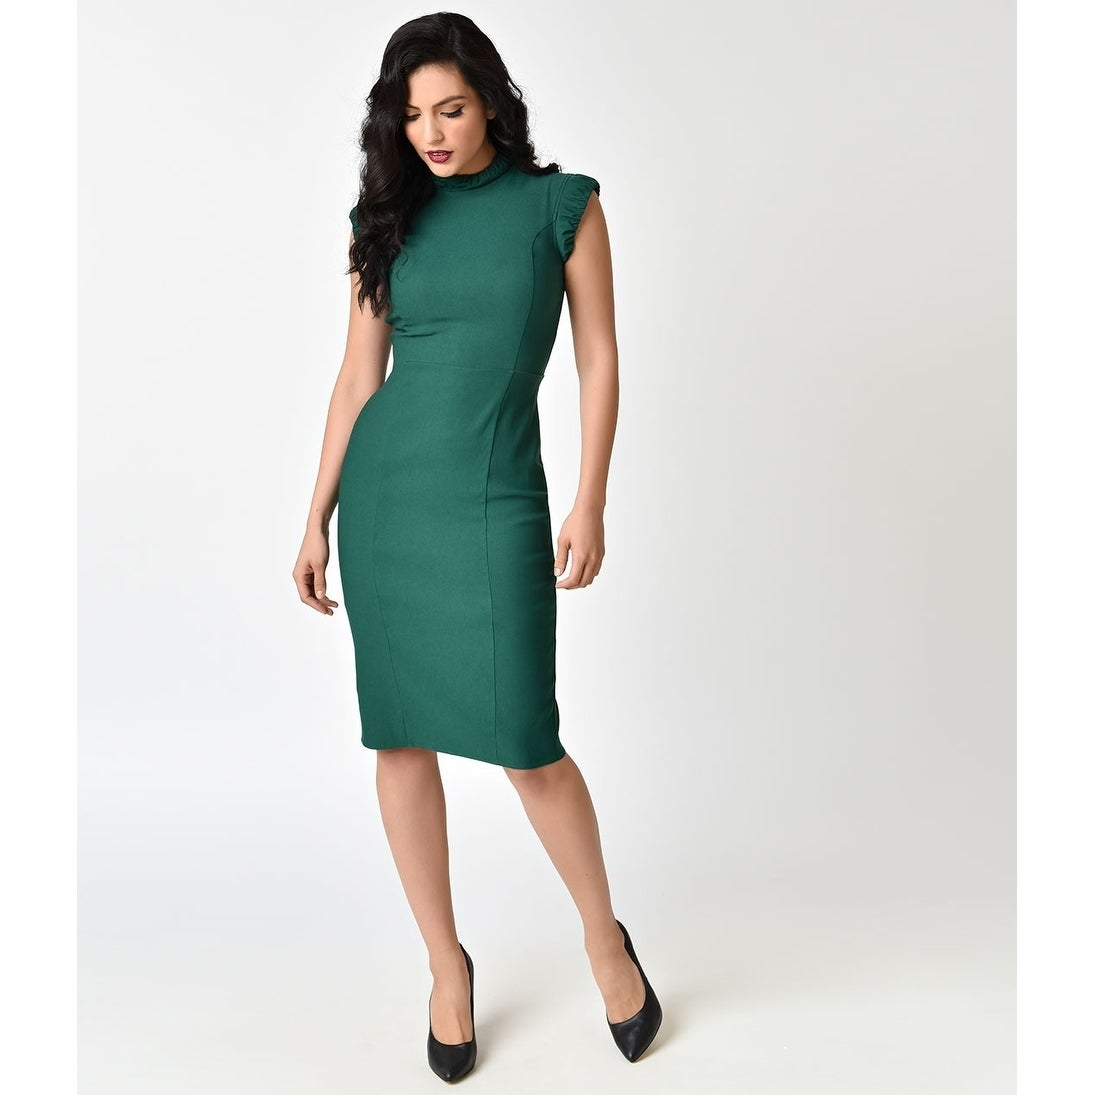 401274f38aaa Shop Unique Vintage Emerald Laverne Wiggle Dress - Free Shipping Today -  Overstock - 22379238